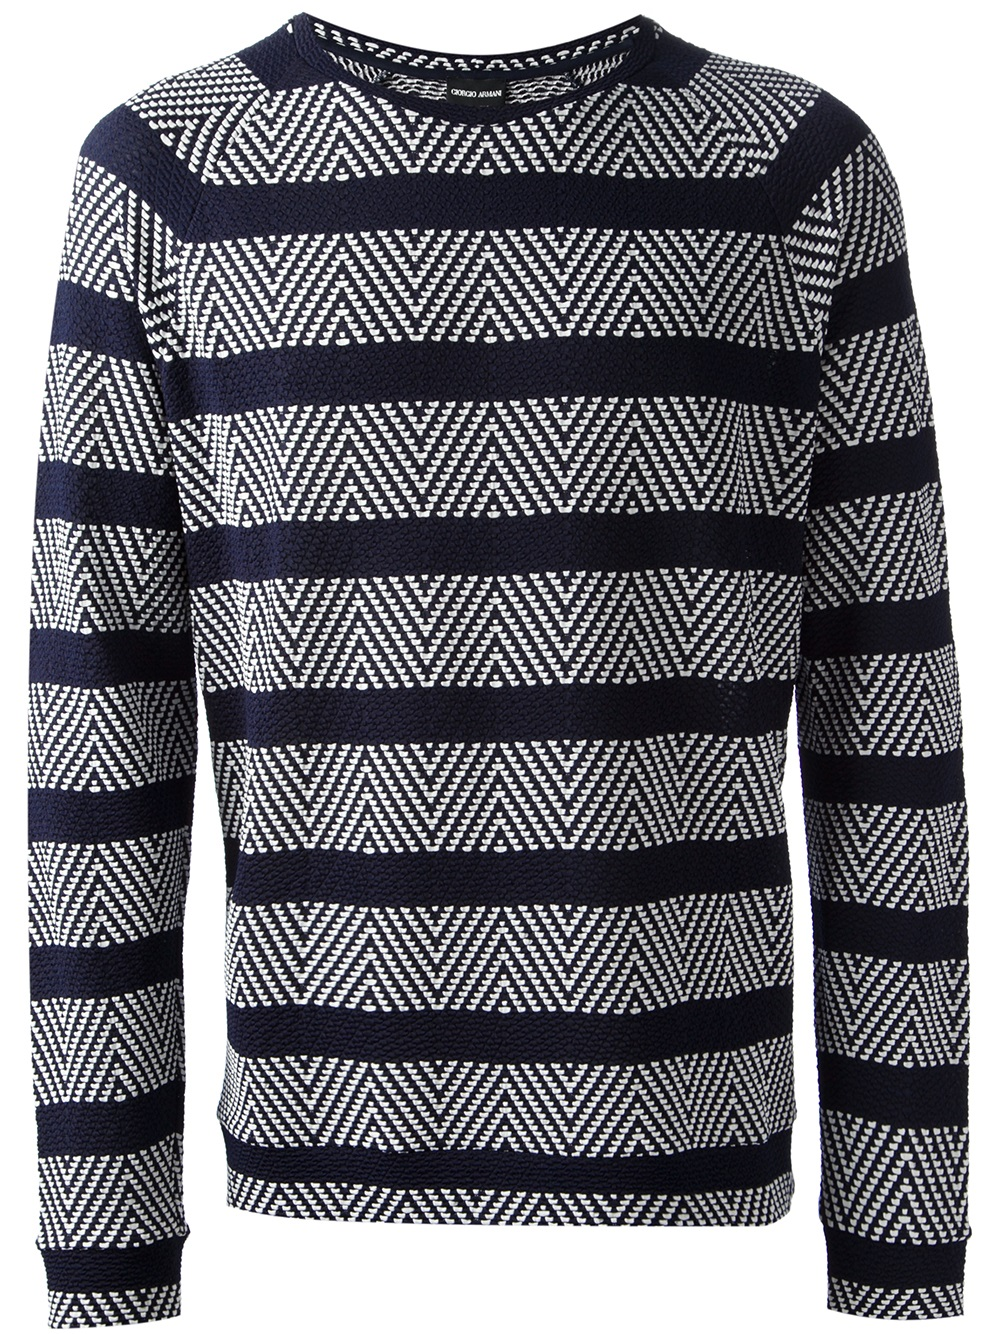 Giorgio-armani-striped-sweater